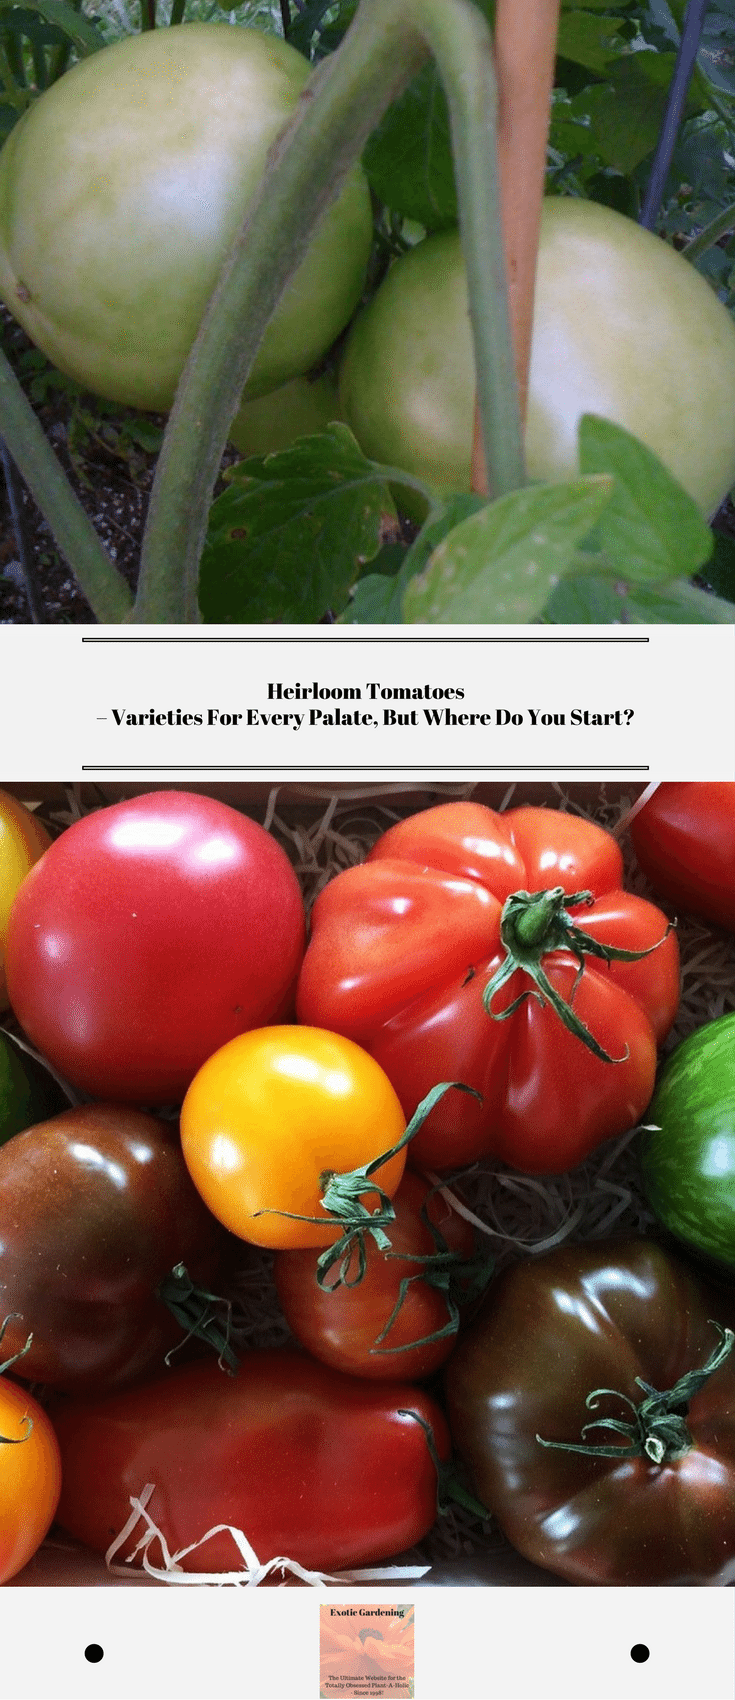 Heirloom Tomatoes – Varieties For Every Palate, But Where Do You Start?